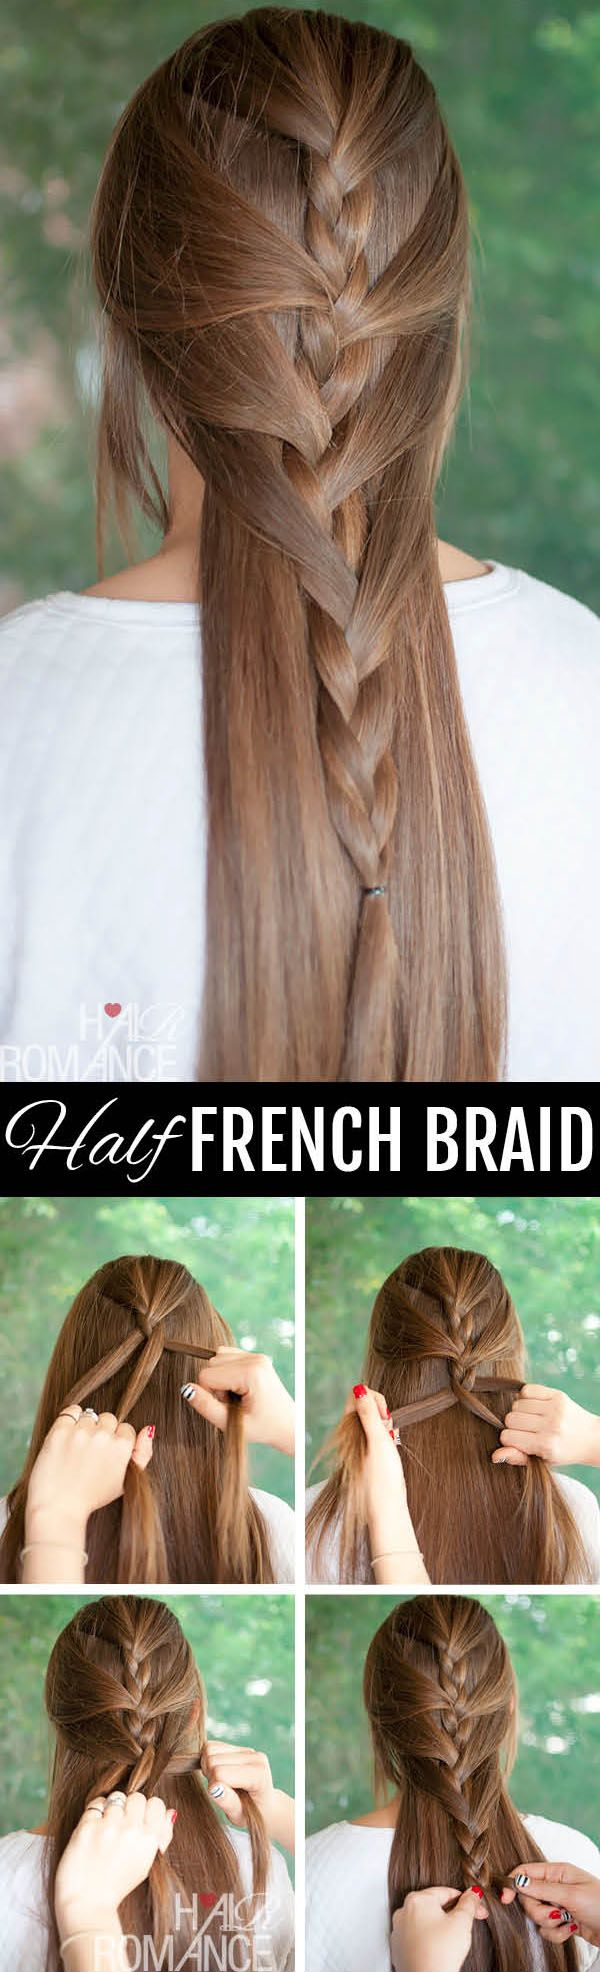 Hair Romance - French Braid hair style tutorial